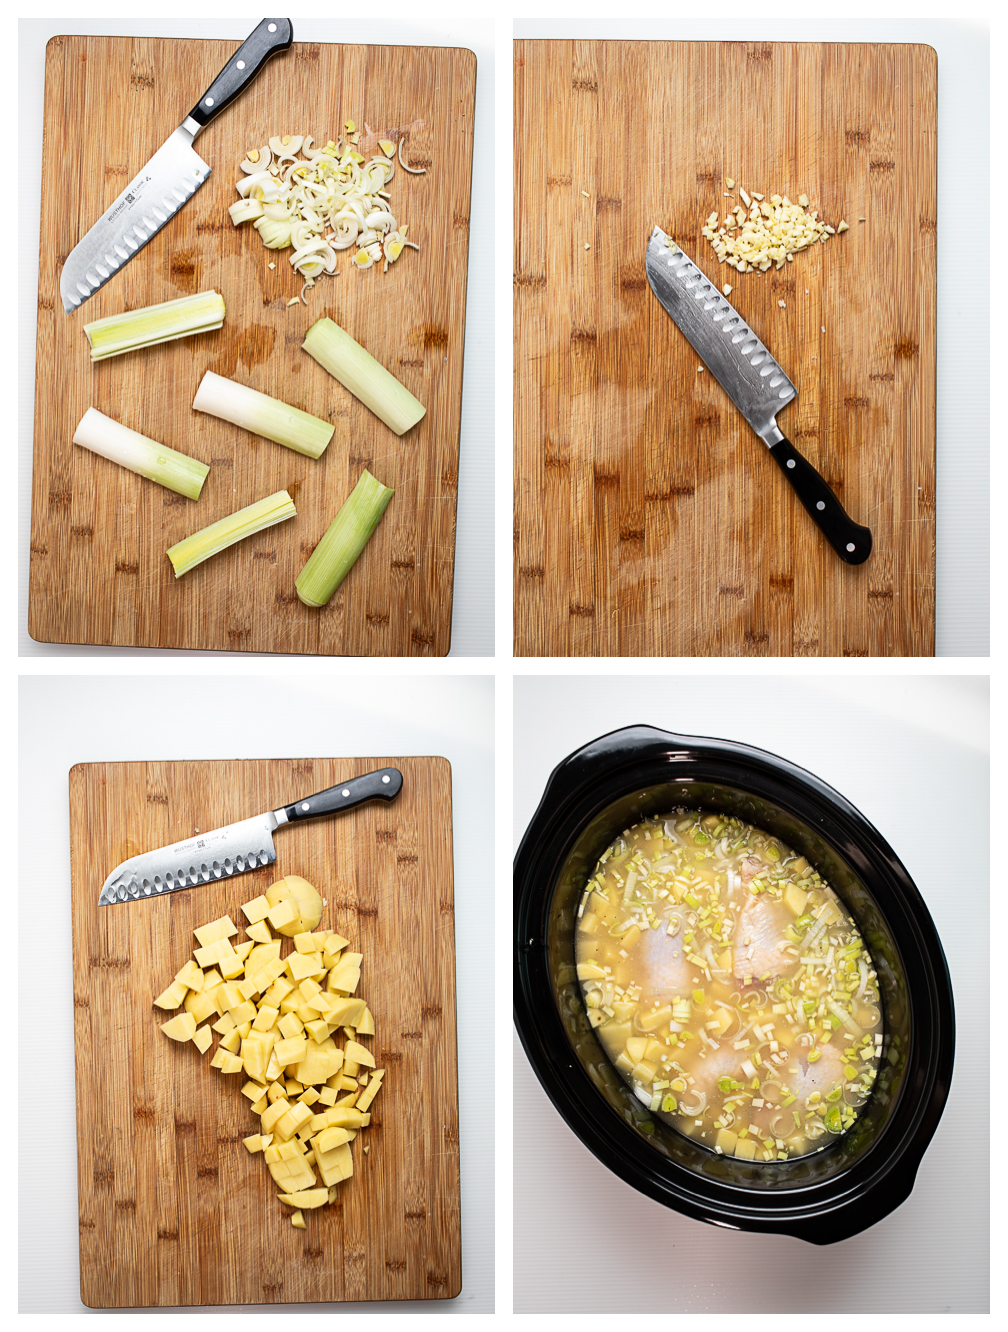 Photo collage showing the first four steps for making slow cooker chicken stew.